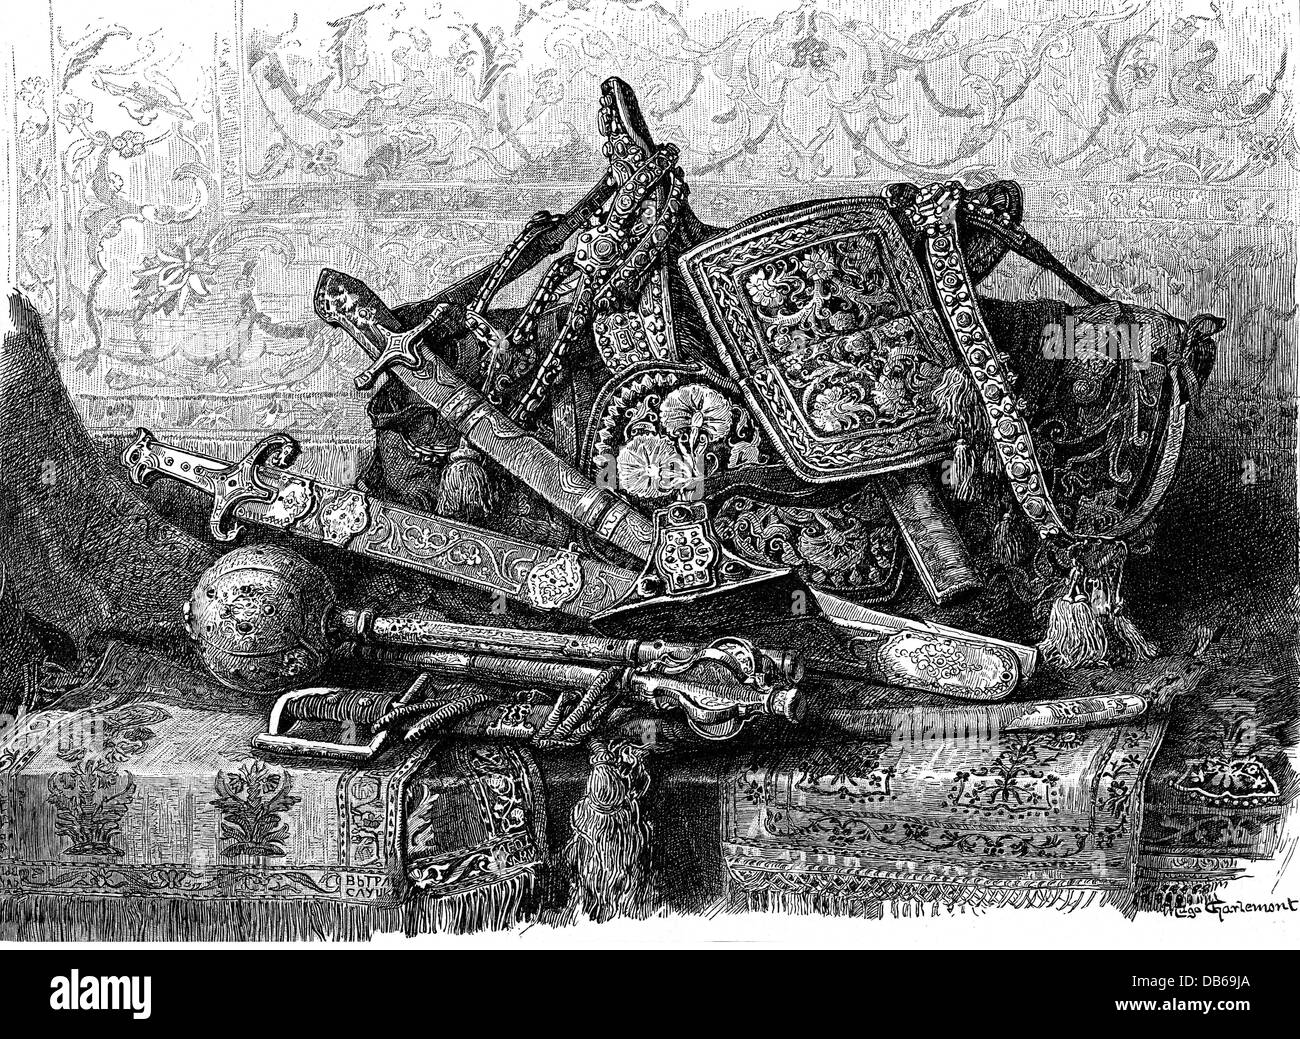 military, weapons and armament, belt, riding equipment and weapons, circa 18th century, wood engraving after painting - Stock Image